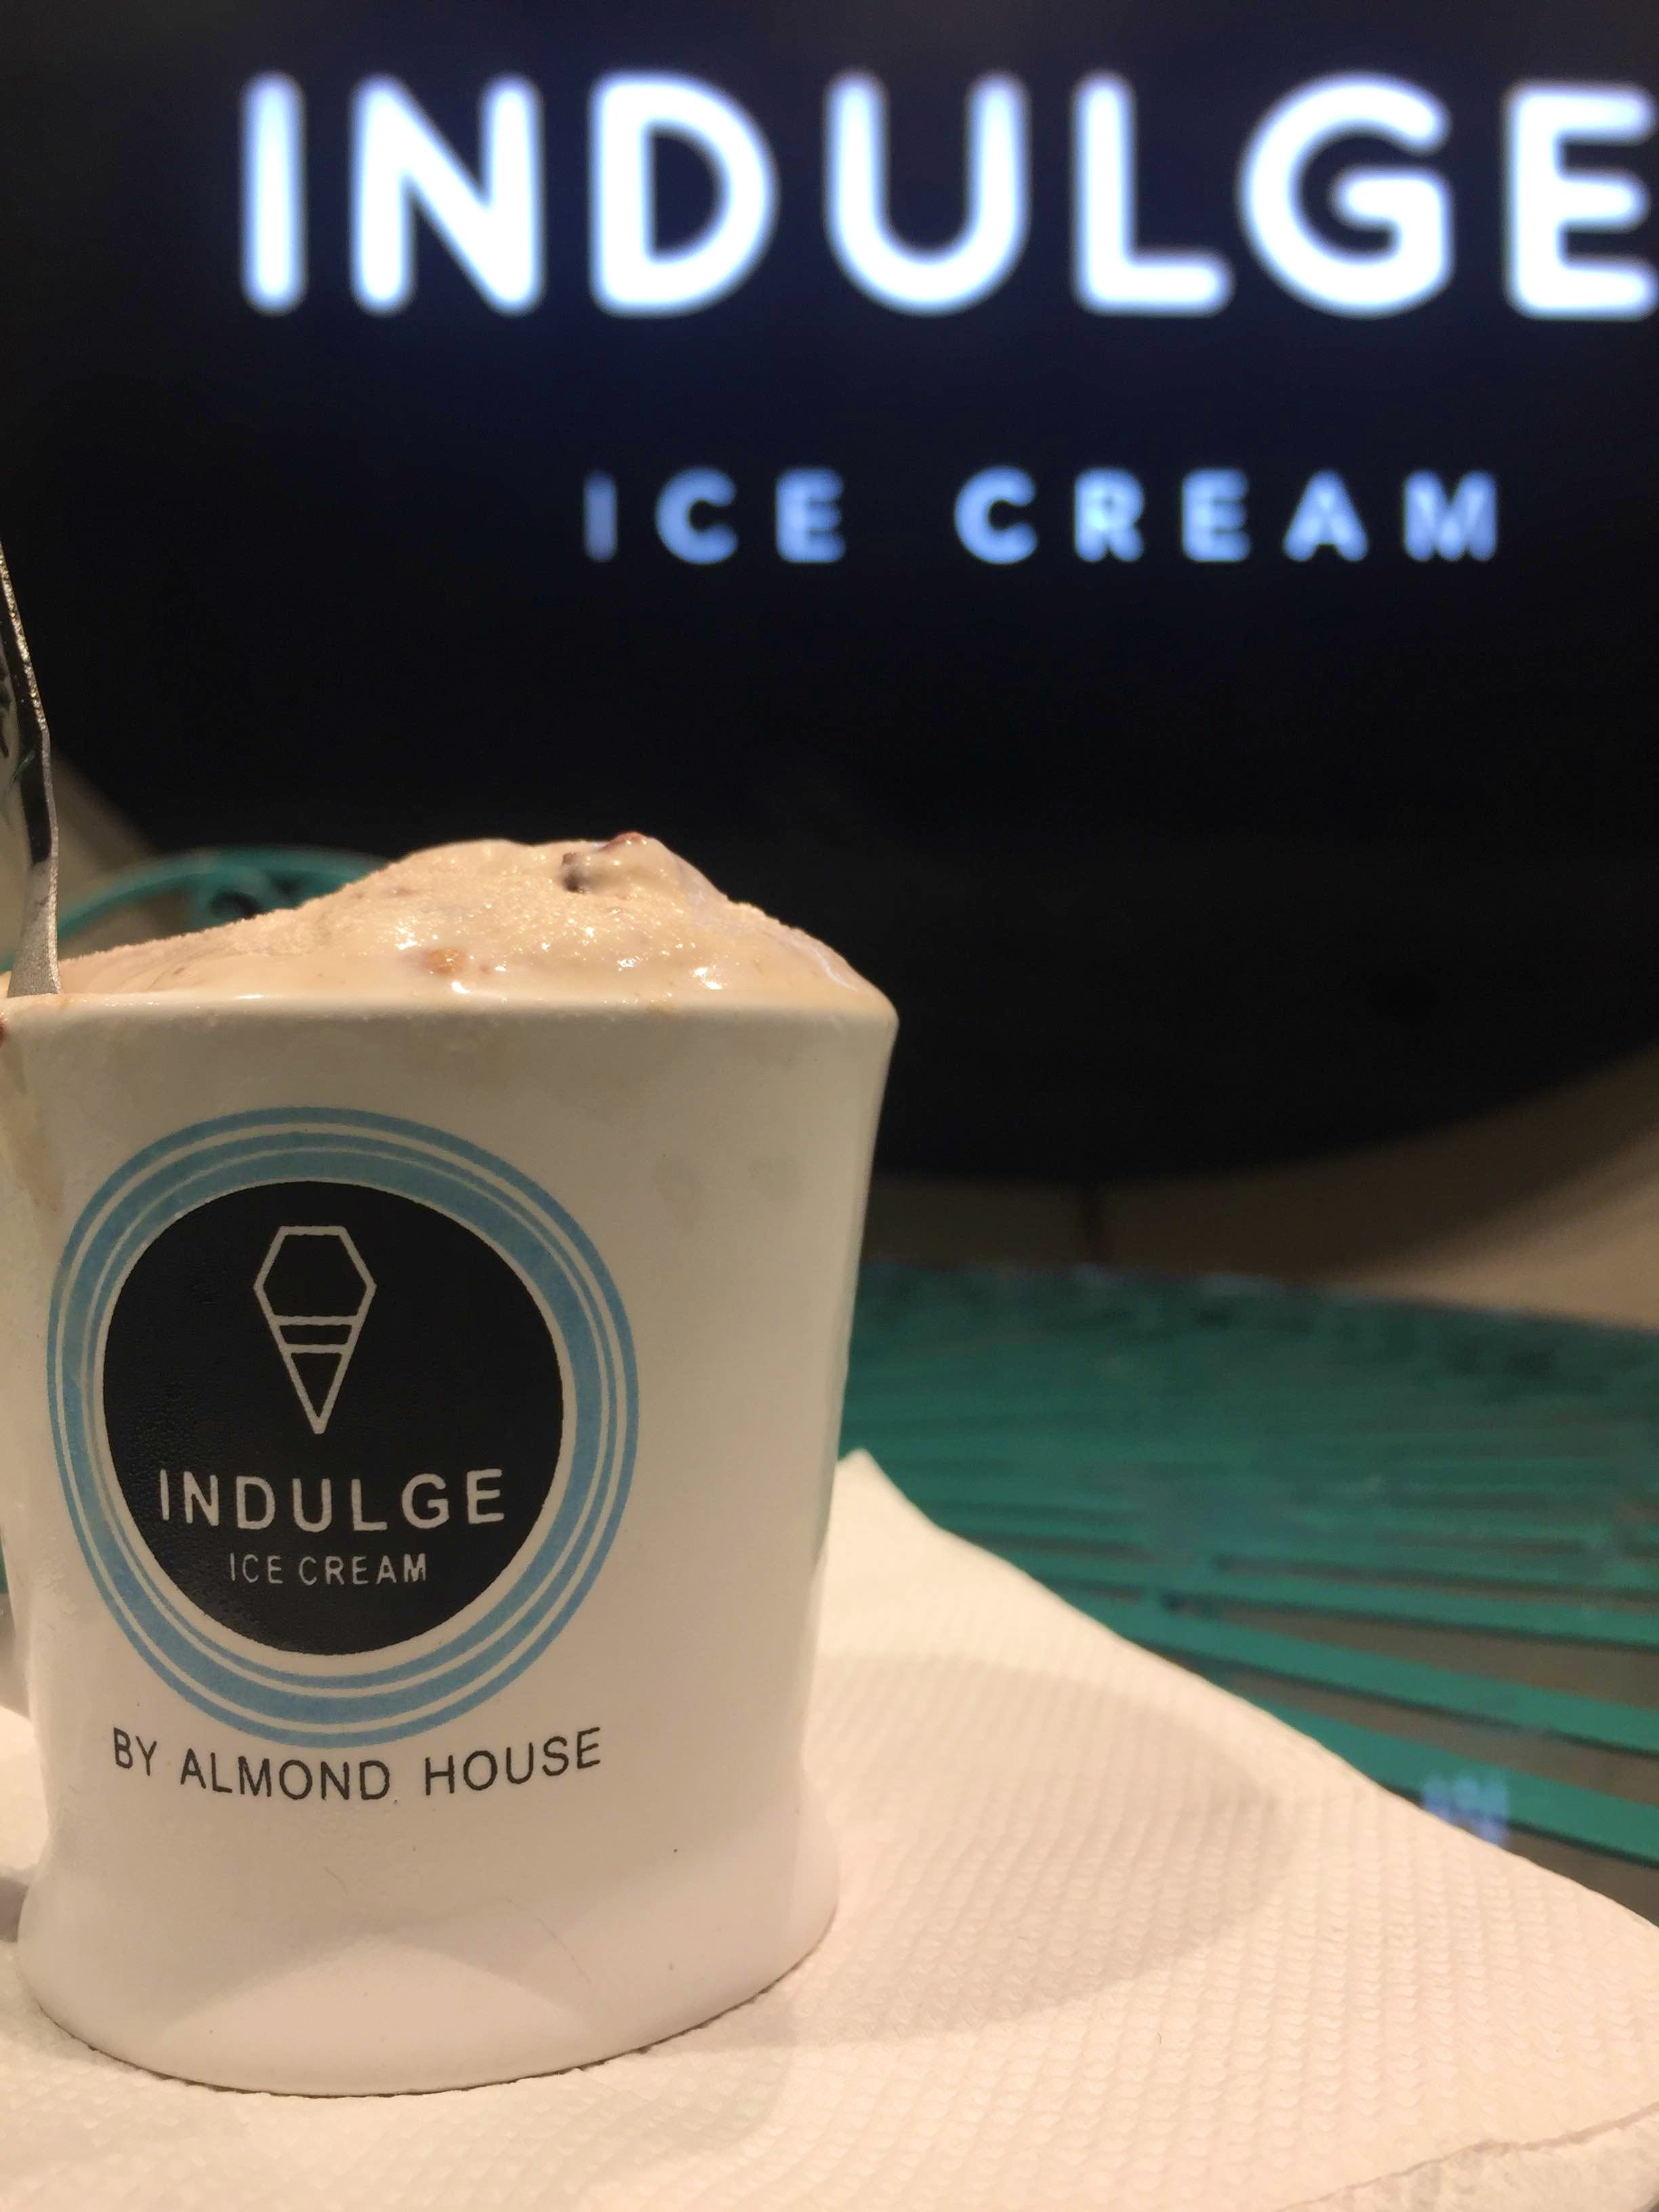 image - Indulge IceCream